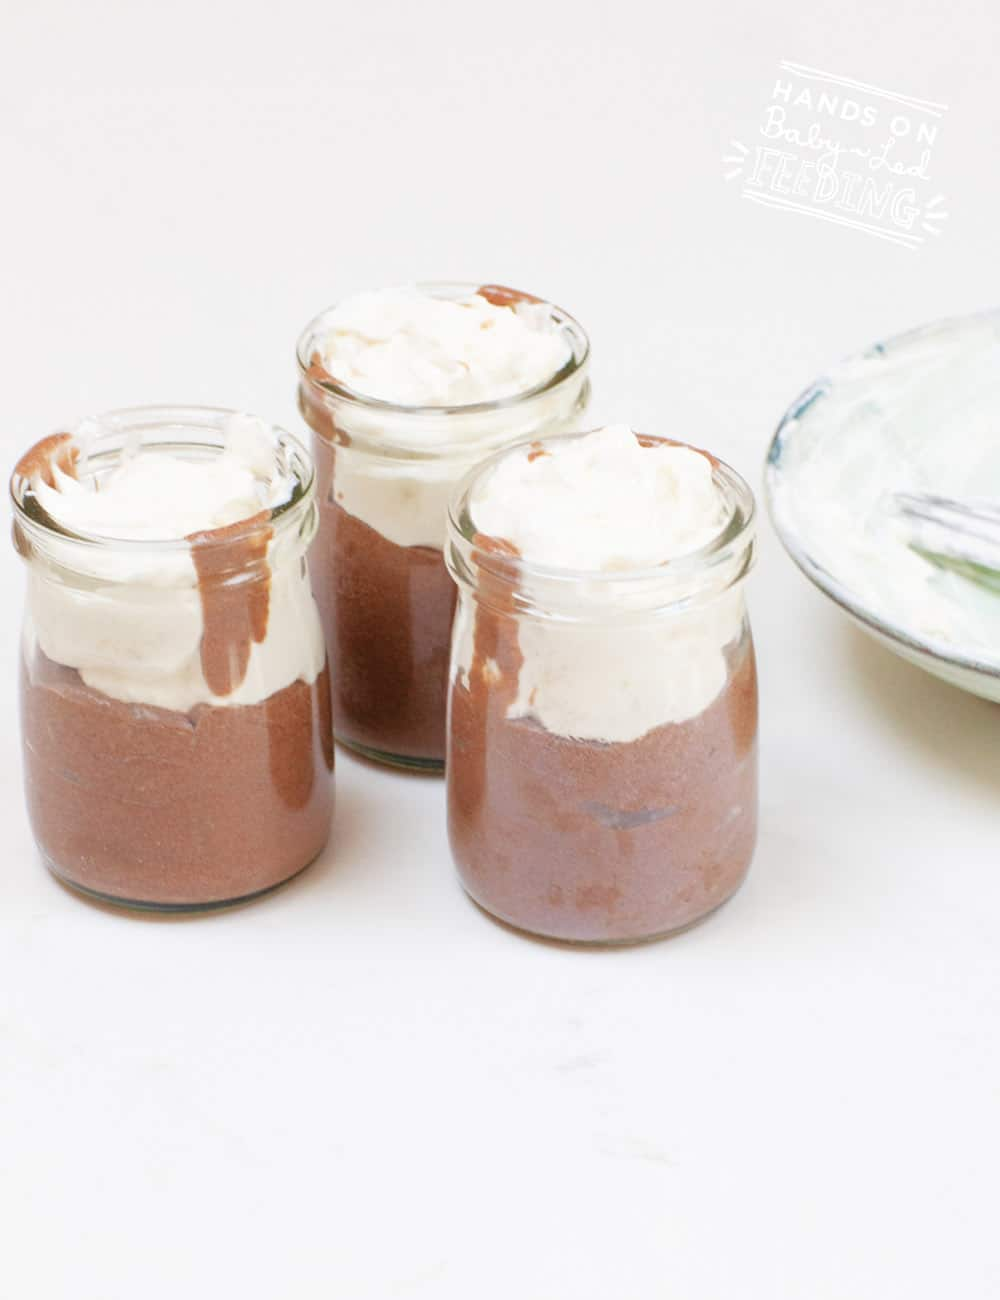 Easy Chocolate Avocado Mousse is made with fresh avocado and bananas! This healthy treat is one of the easiest baby led weaning recipe ever! Vegan and dairy free option and as always refined sugar free! #babyledweaning #babyledfeeding #healthysnacks